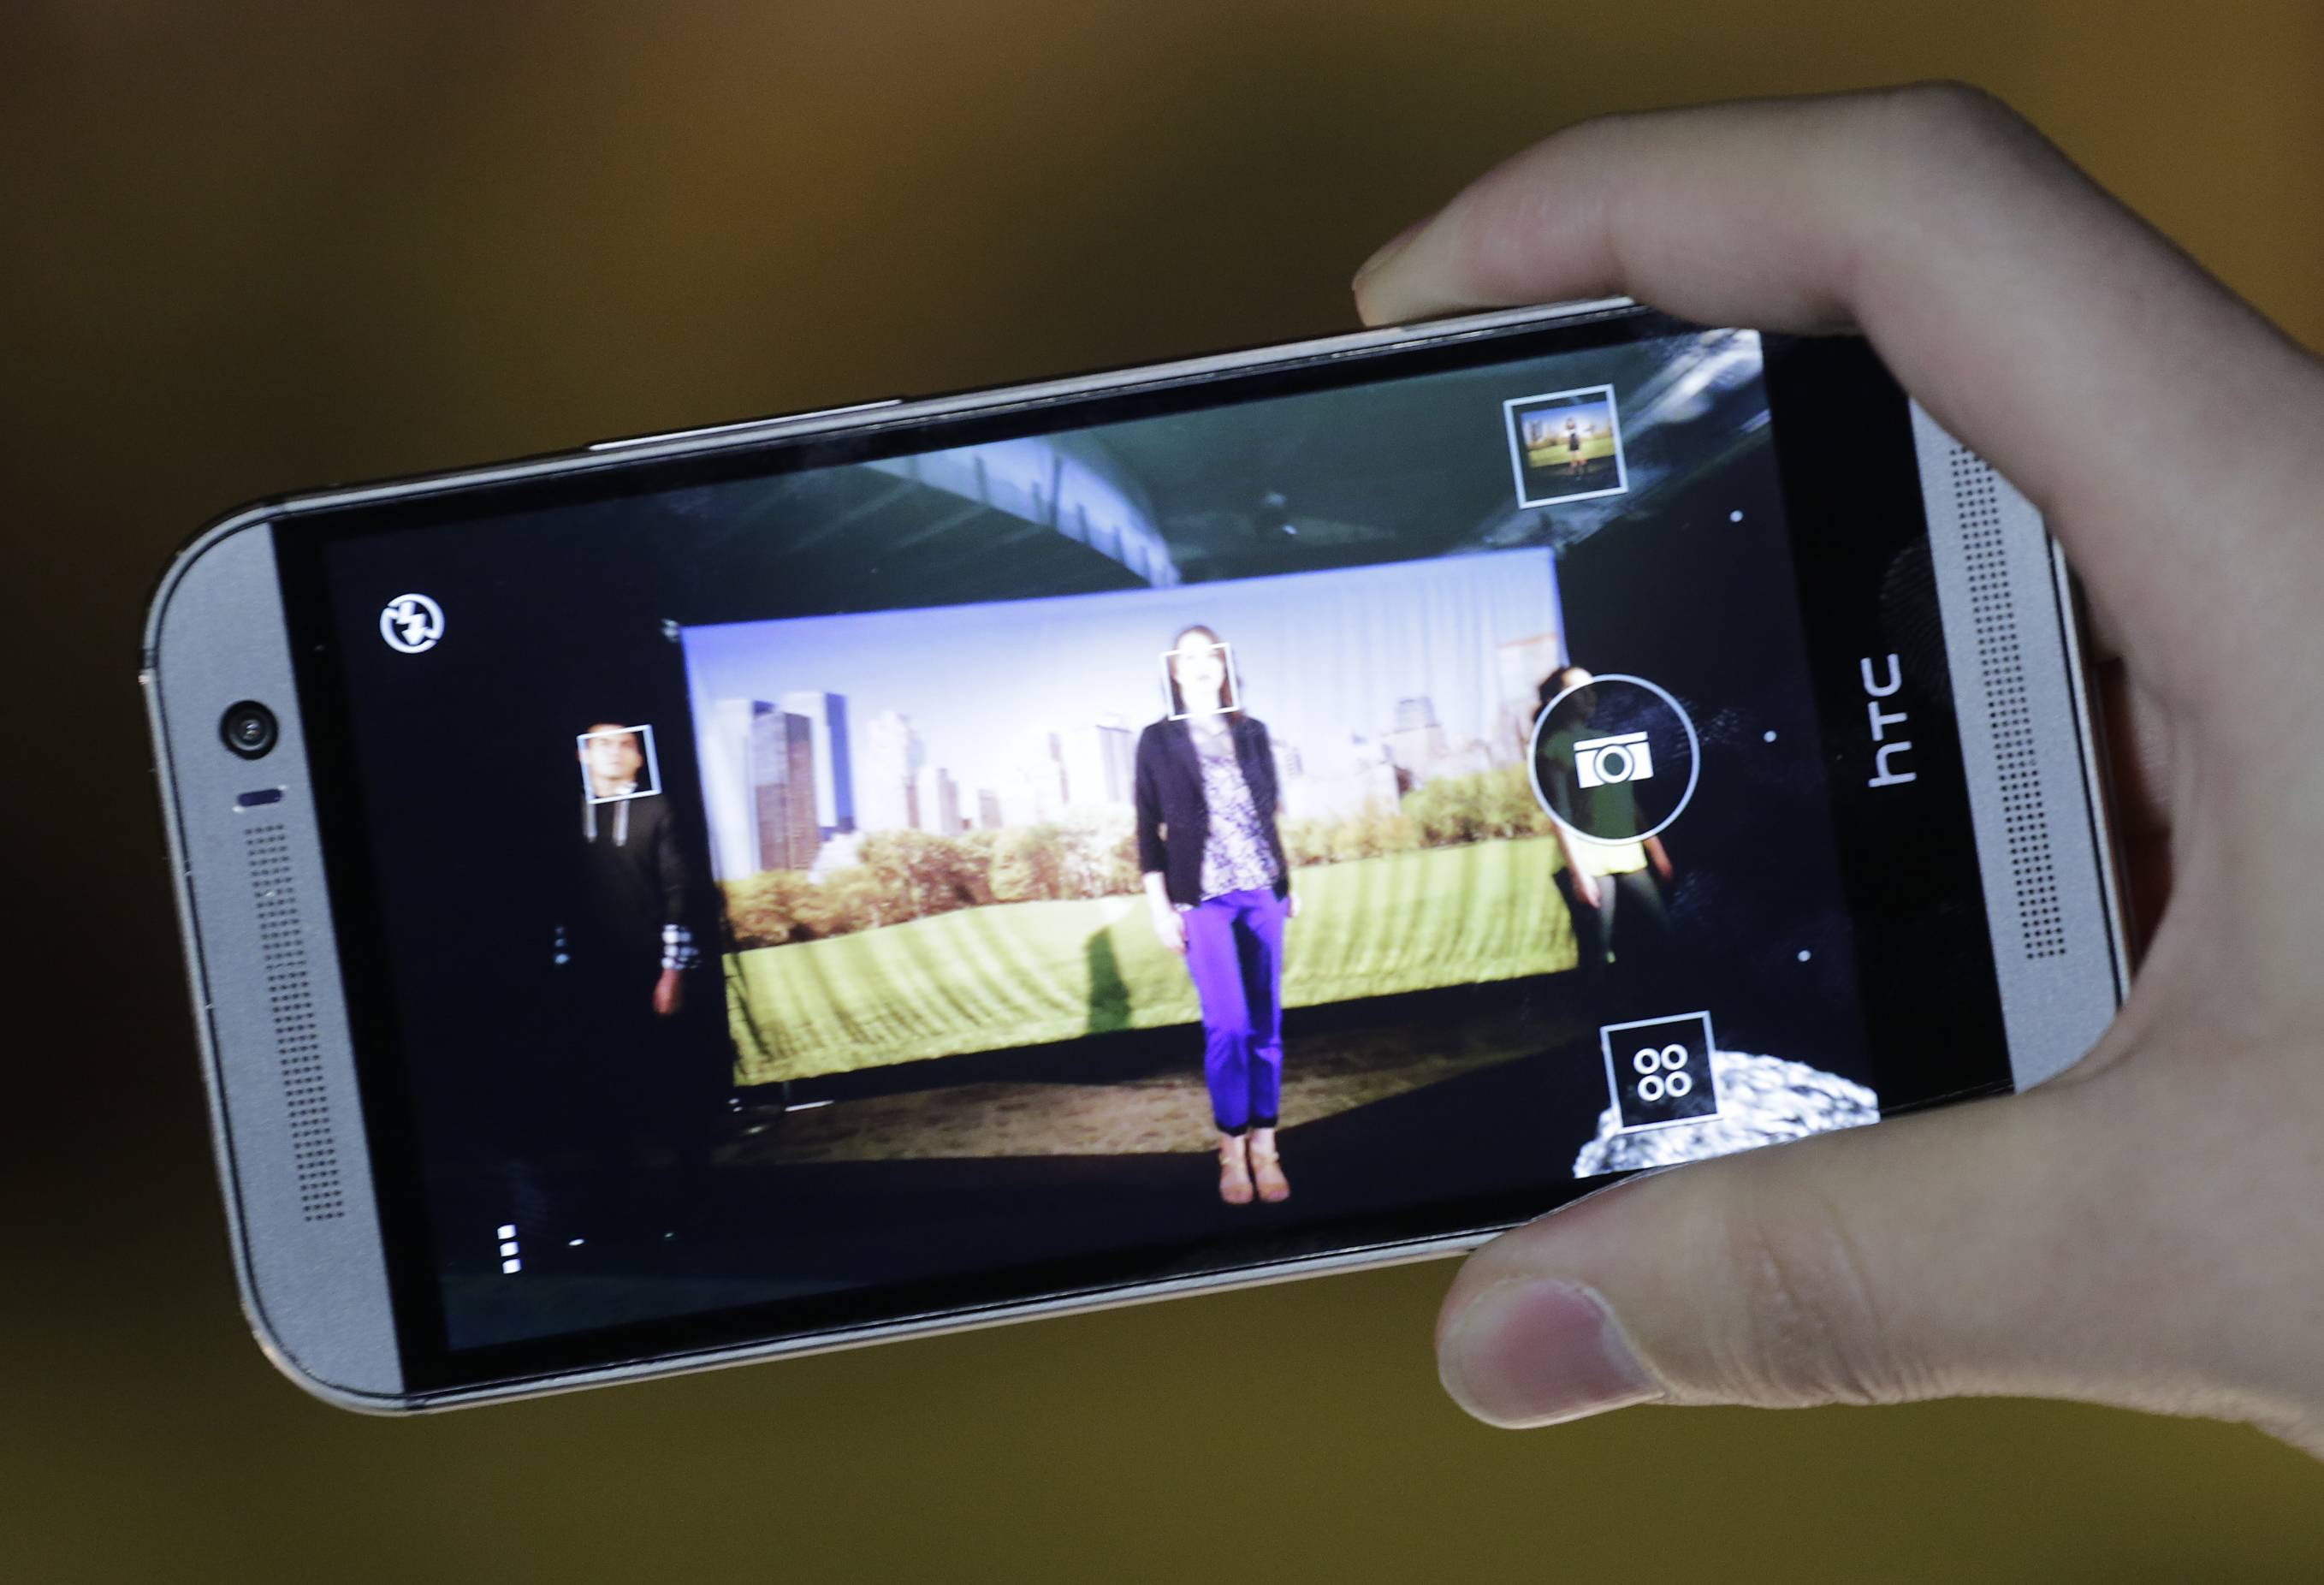 HTC is updating its flagship HTC One smartphone by giving it a larger screen, better software and a camera that's easier to use.